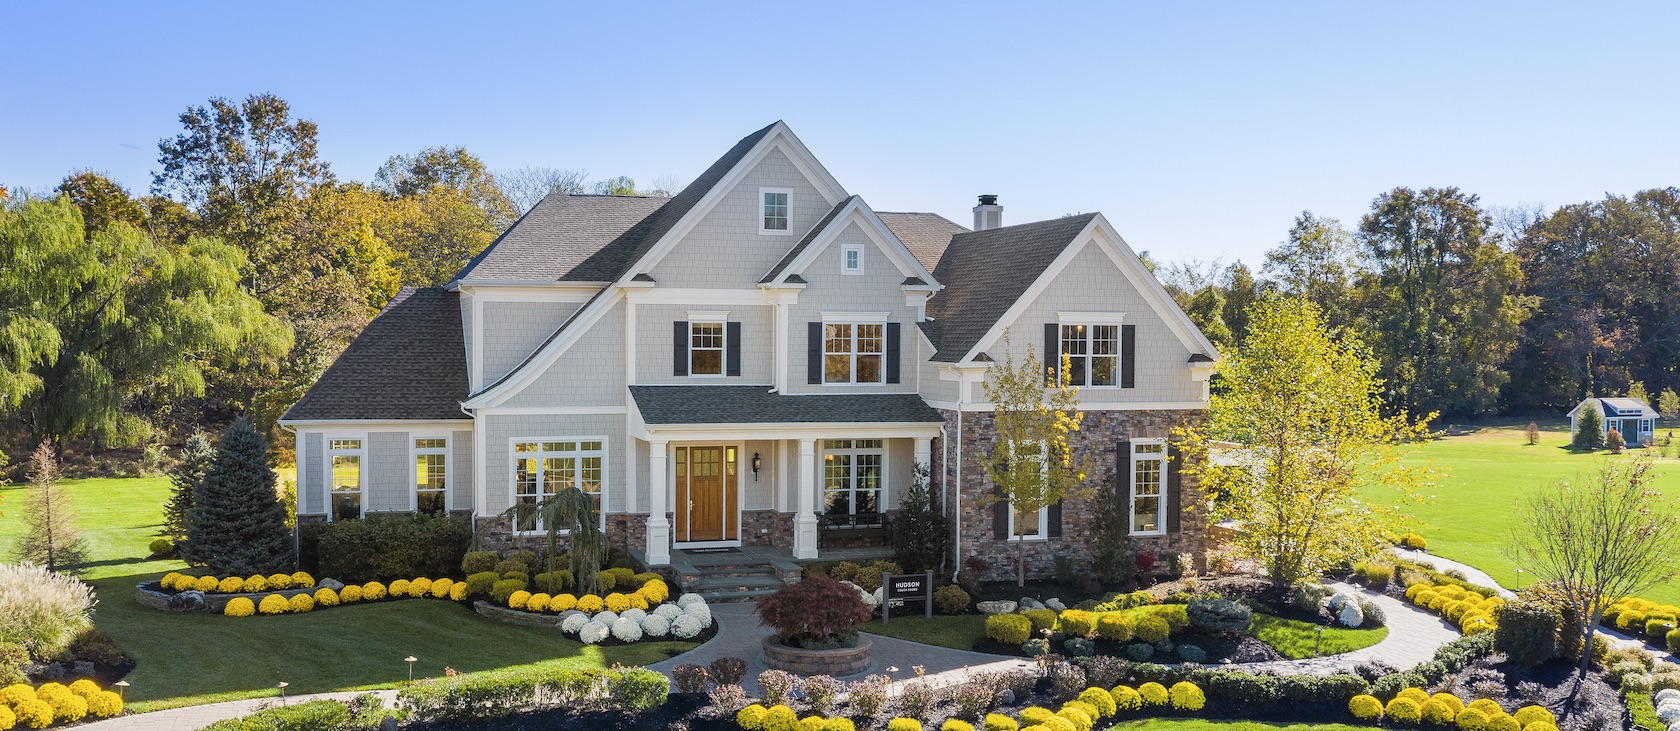 Home exterior with landscaping in New Jersey.